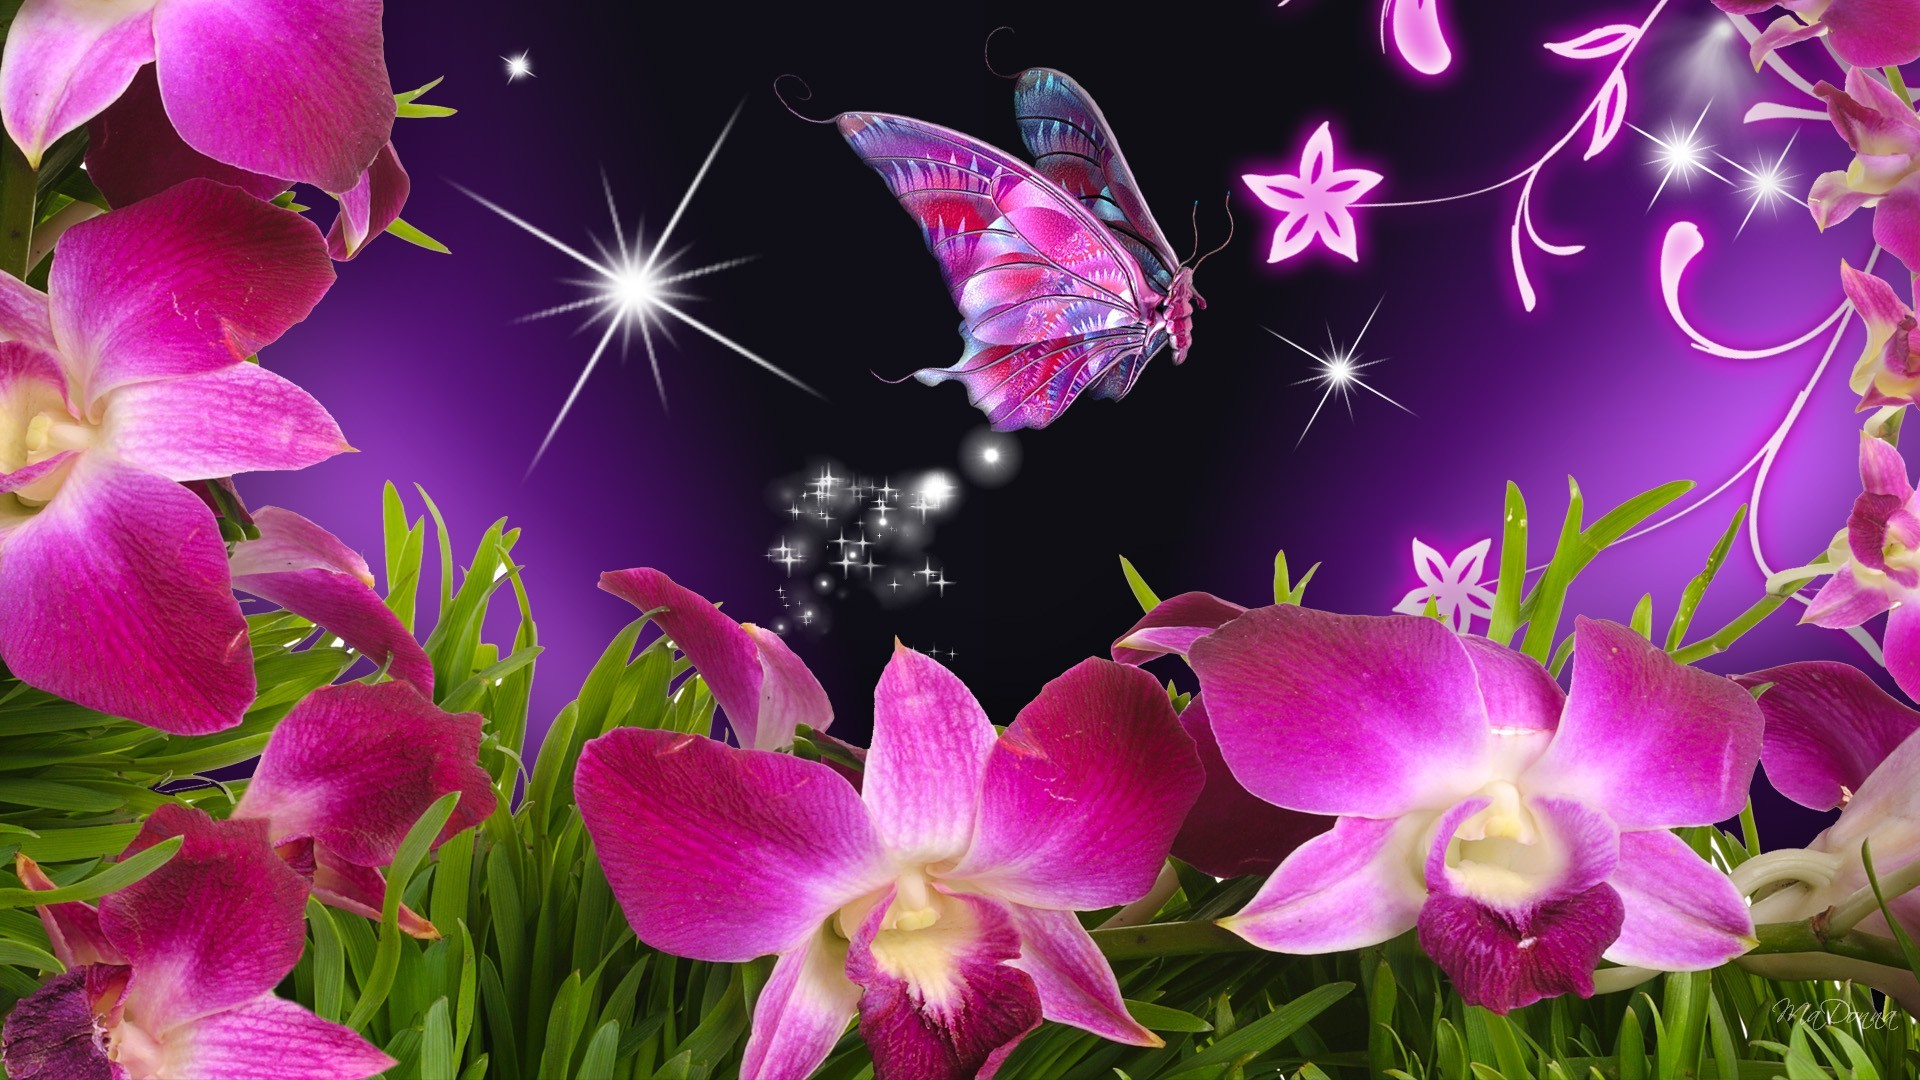 Flowers For > Beautiful Flowers And Butterflies Wallpapers - 3d Butterfly With Flower - HD Wallpaper